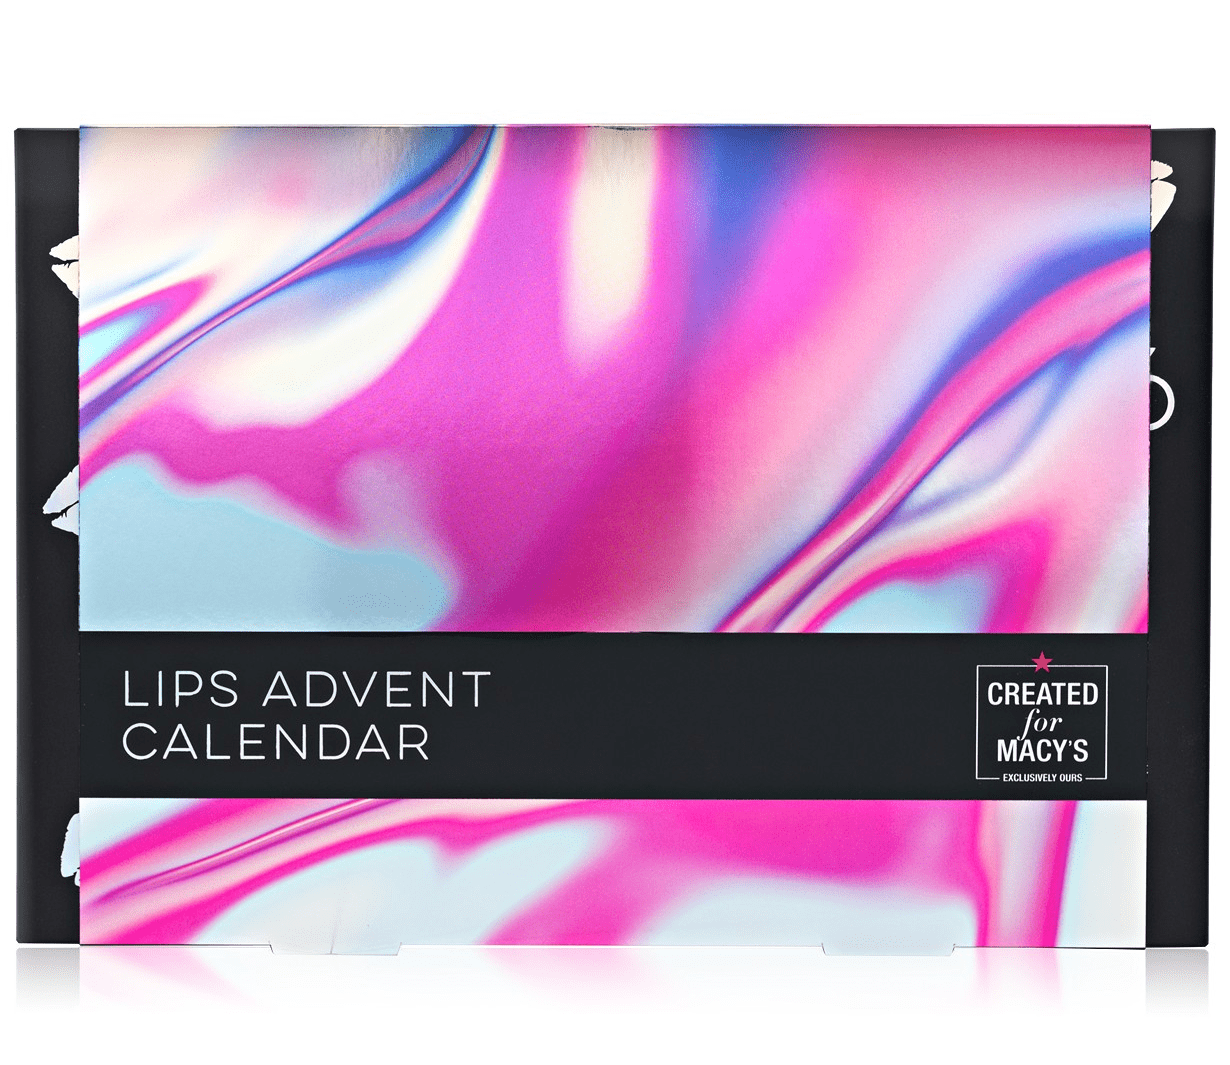 2018 Macy's All About Lips Advent Calendar Available Now + Full Spoilers!